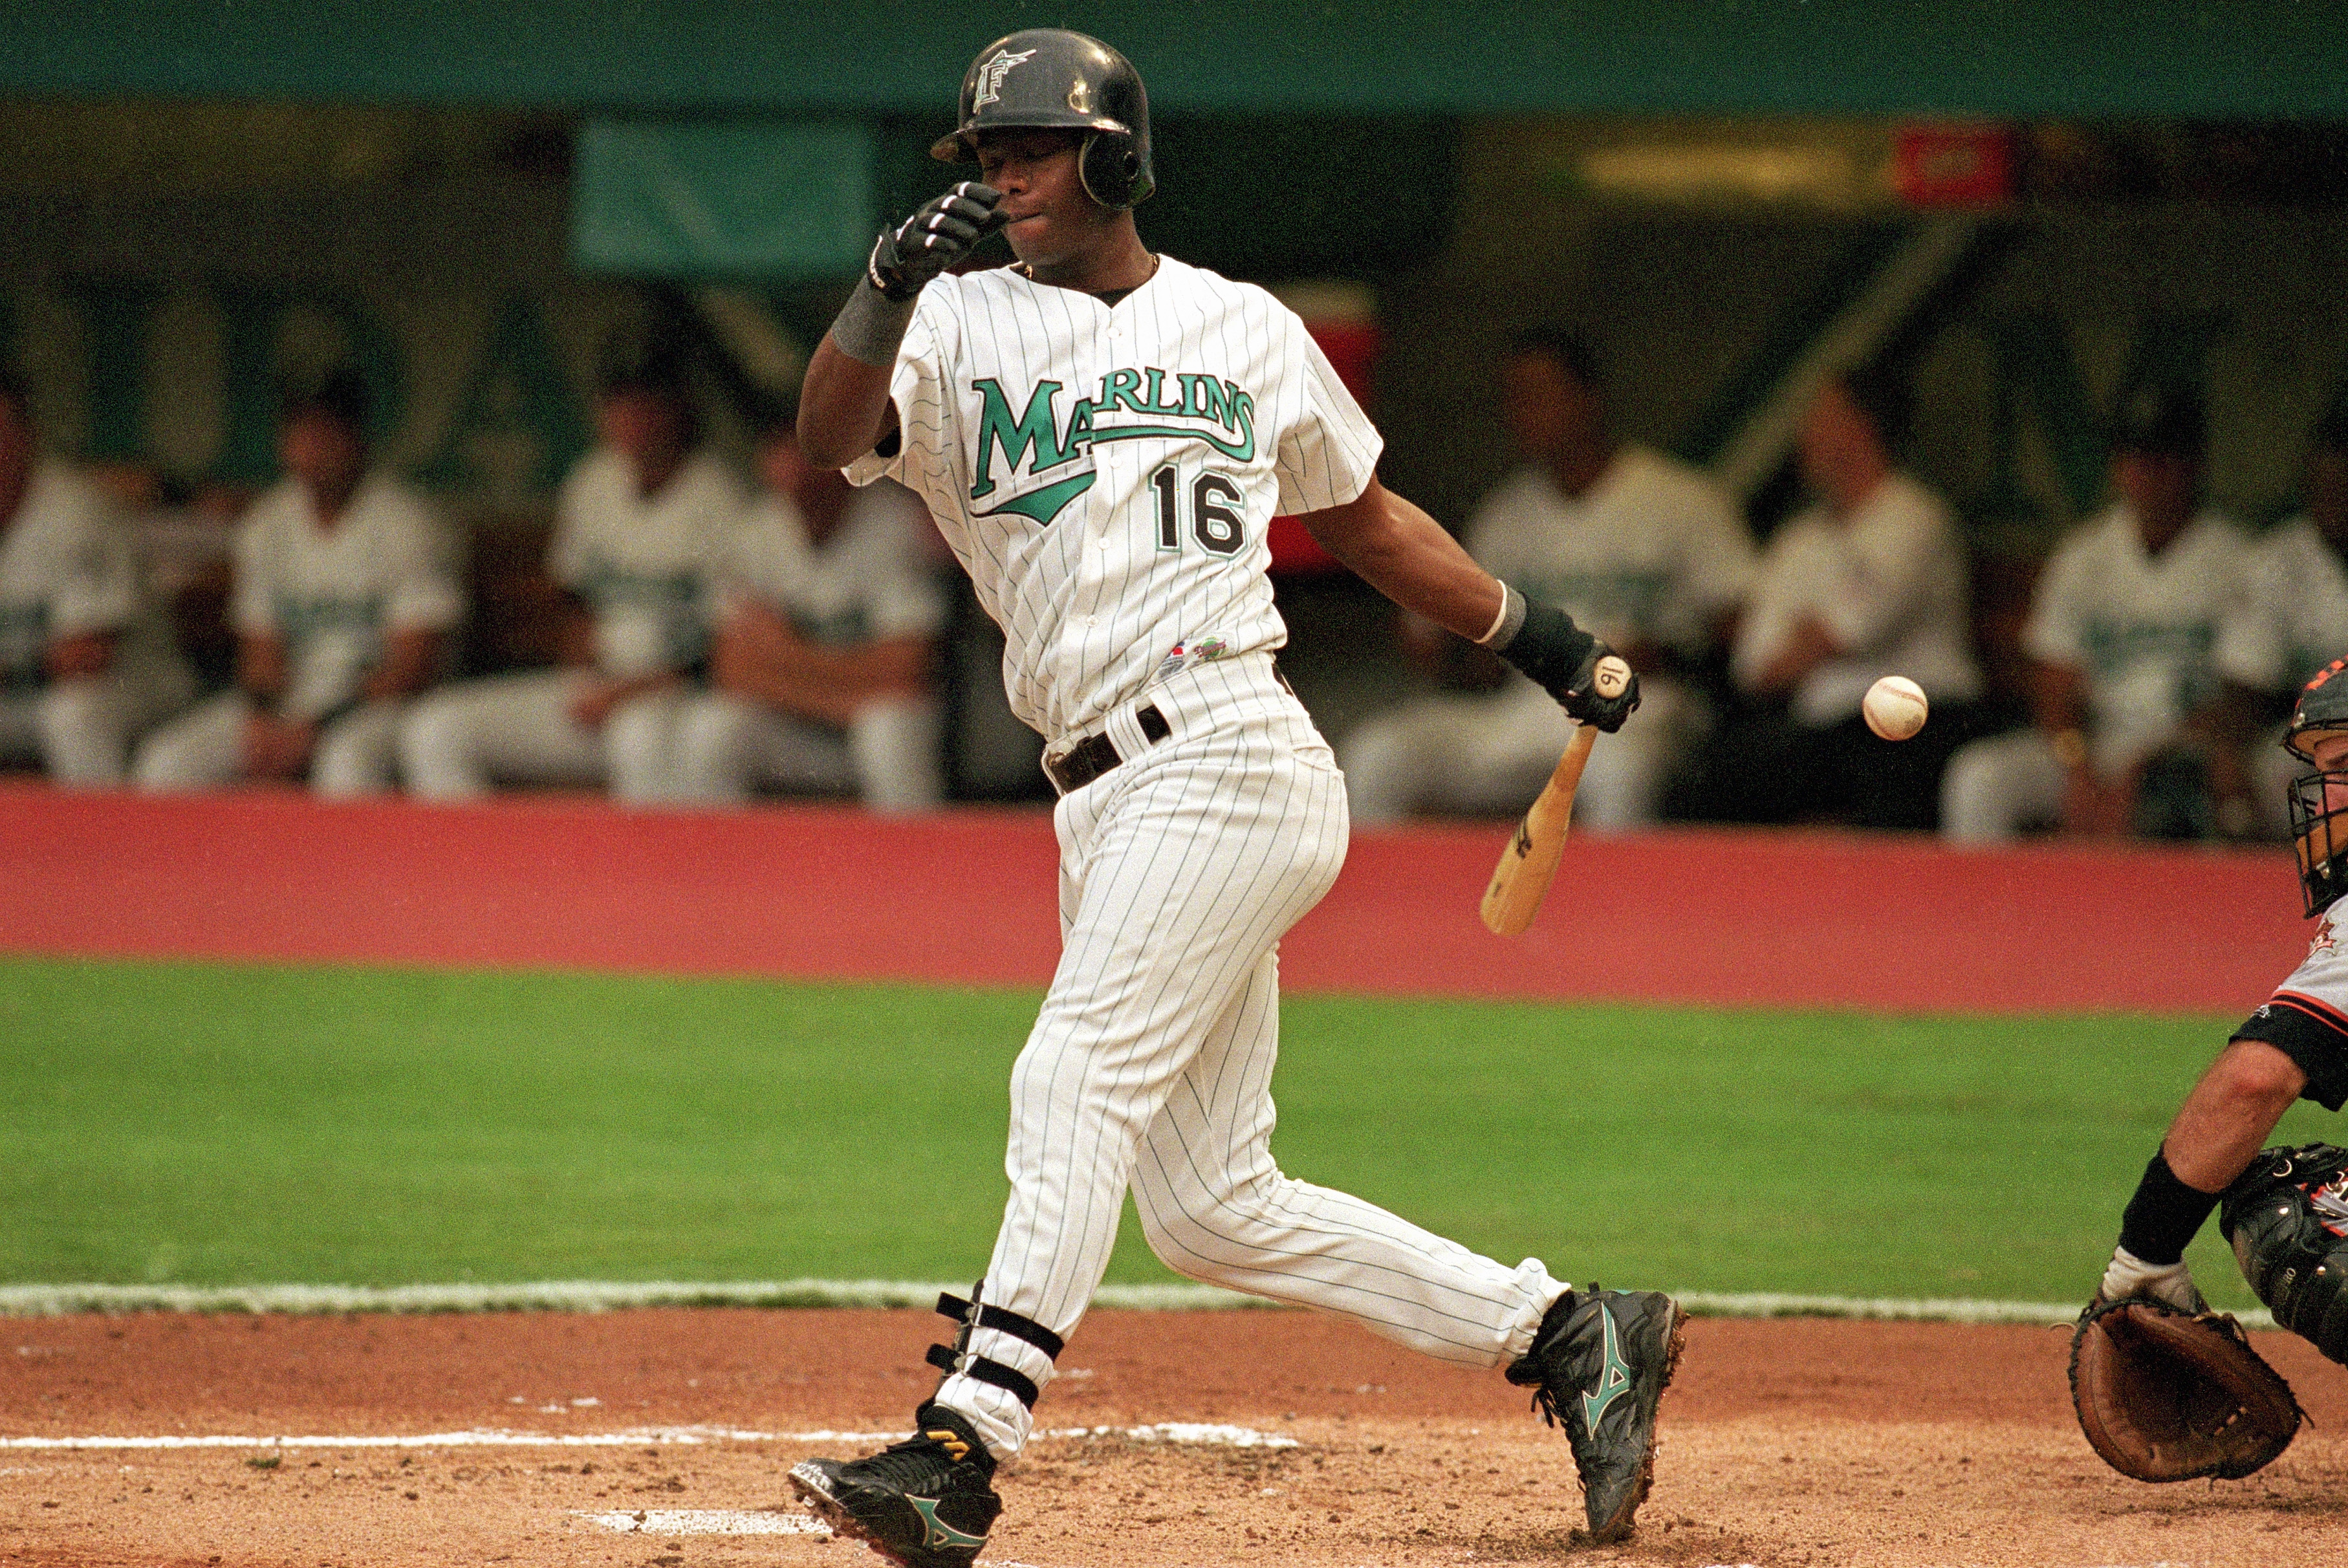 Edgar Renteria #16 of the Florida Marlins swings at a pitch during Game one of the 1997 National League Divisional Series against the San Francisco Giants at Pro Player Stadium